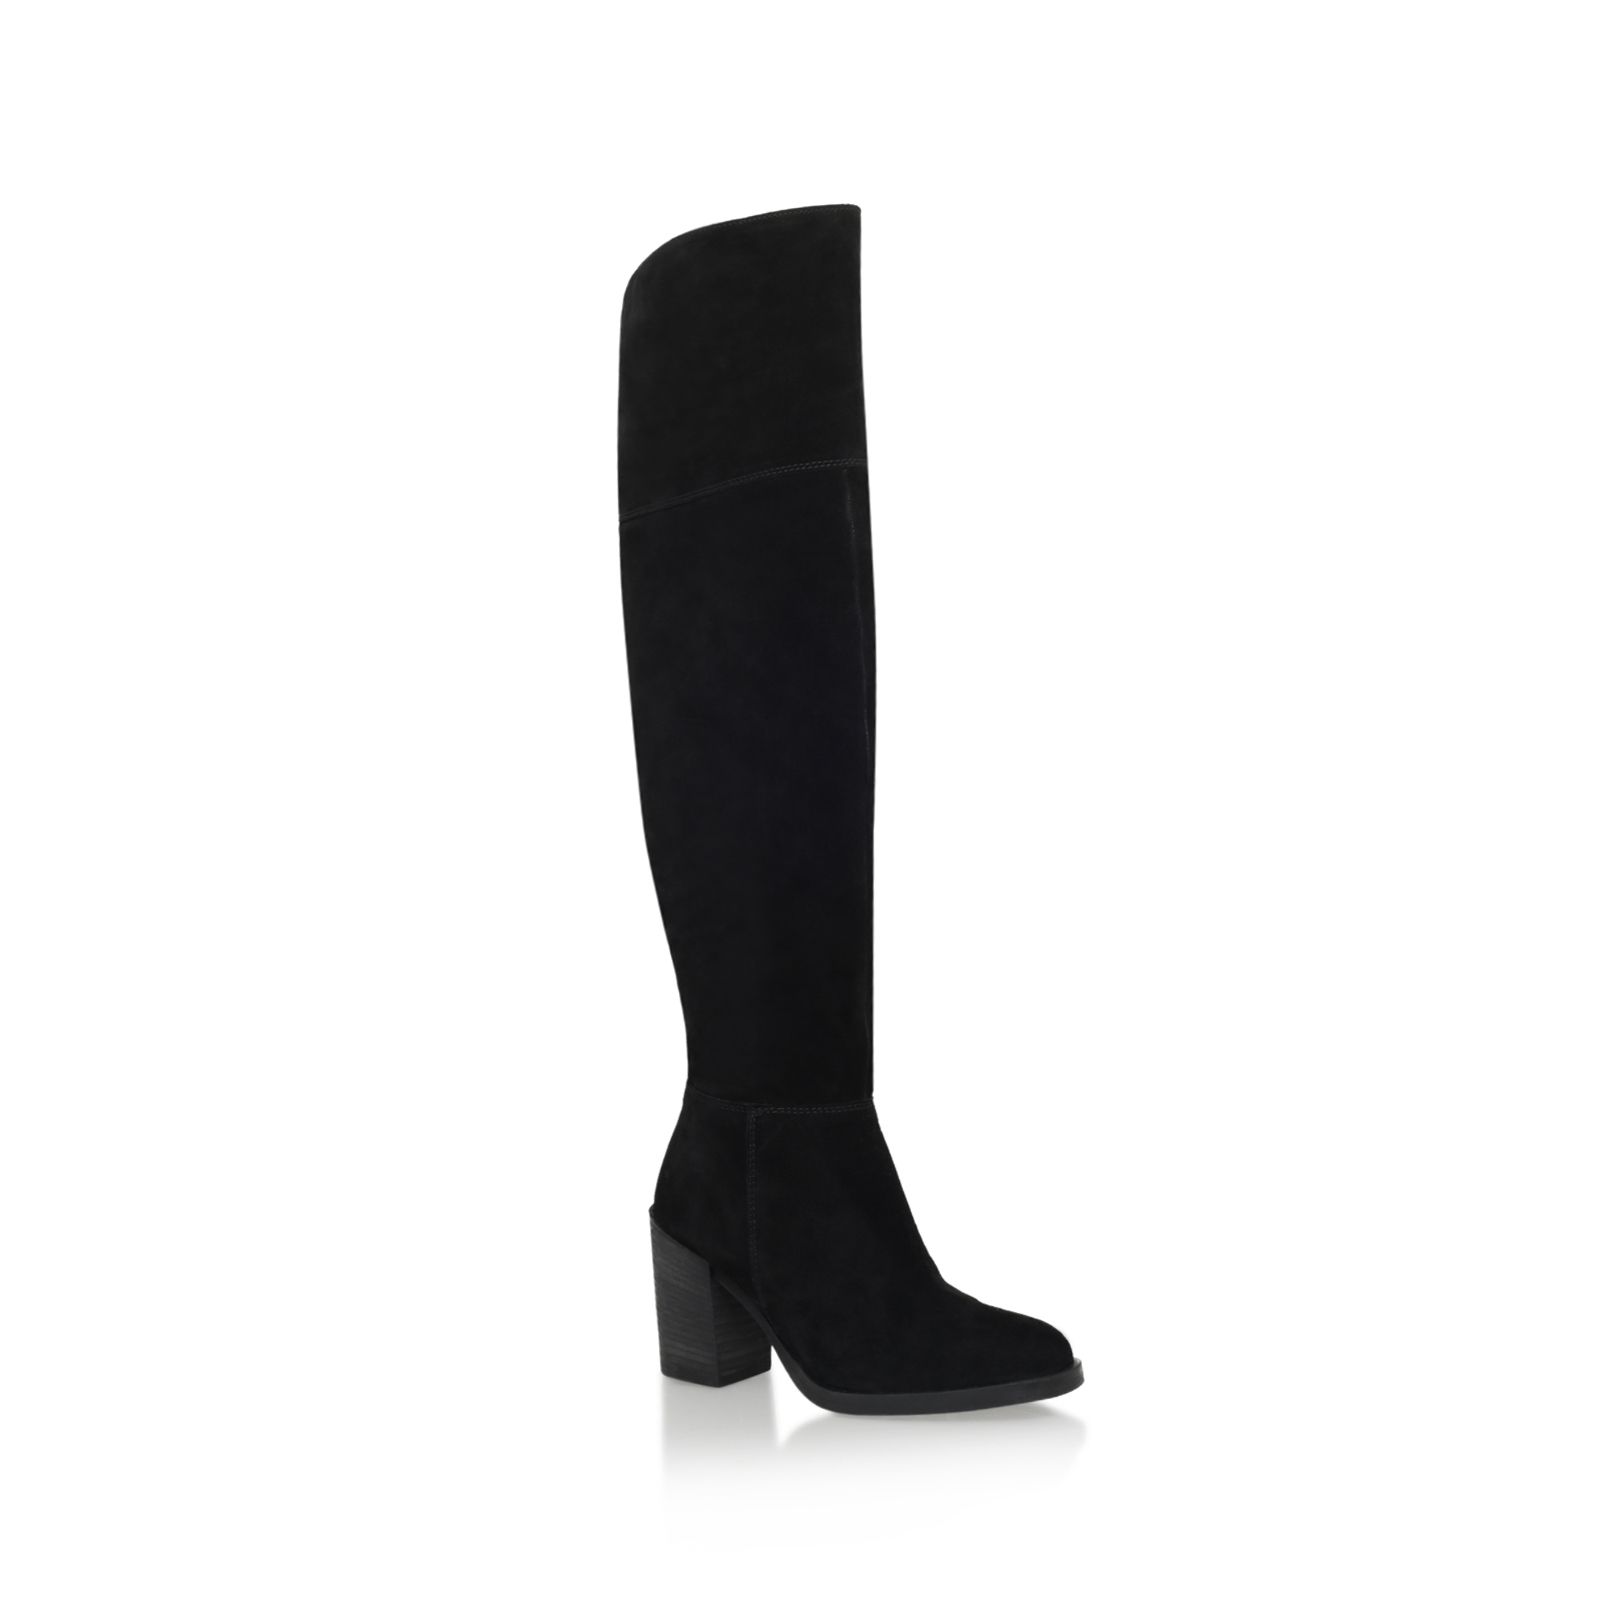 Carvela Wish high heel knee boots ...